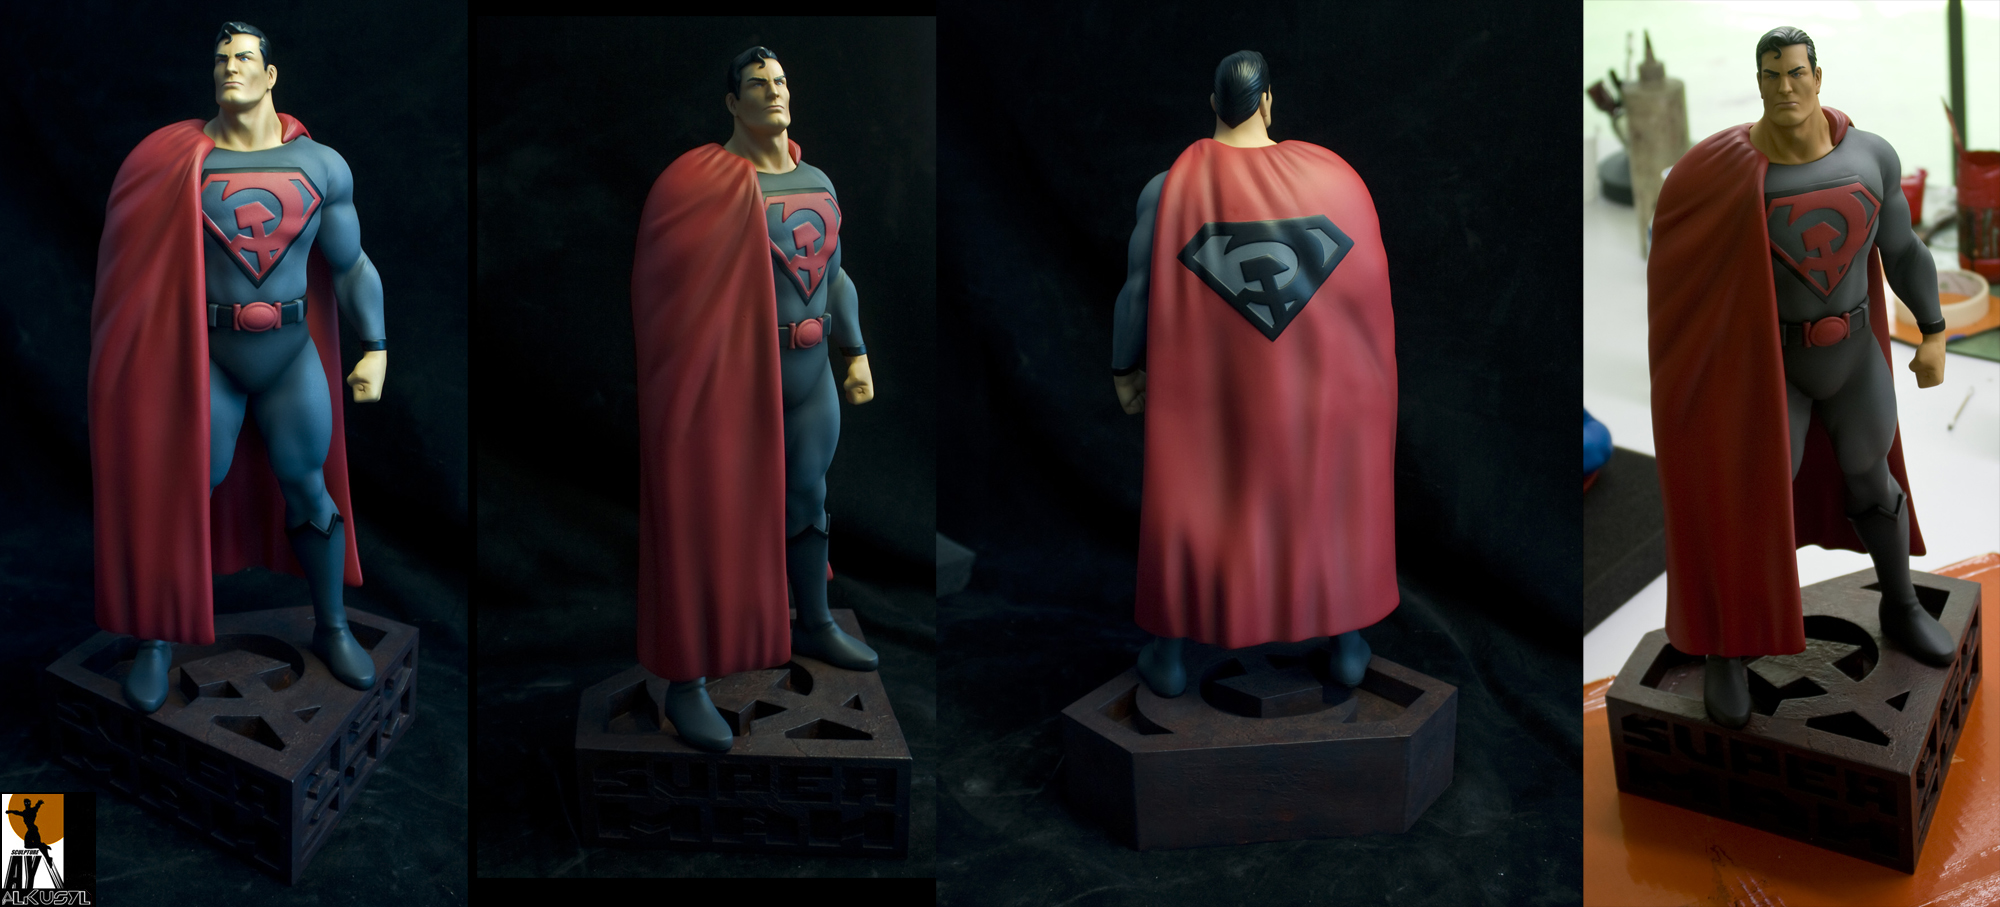 The Red Son painted by AYsculpture